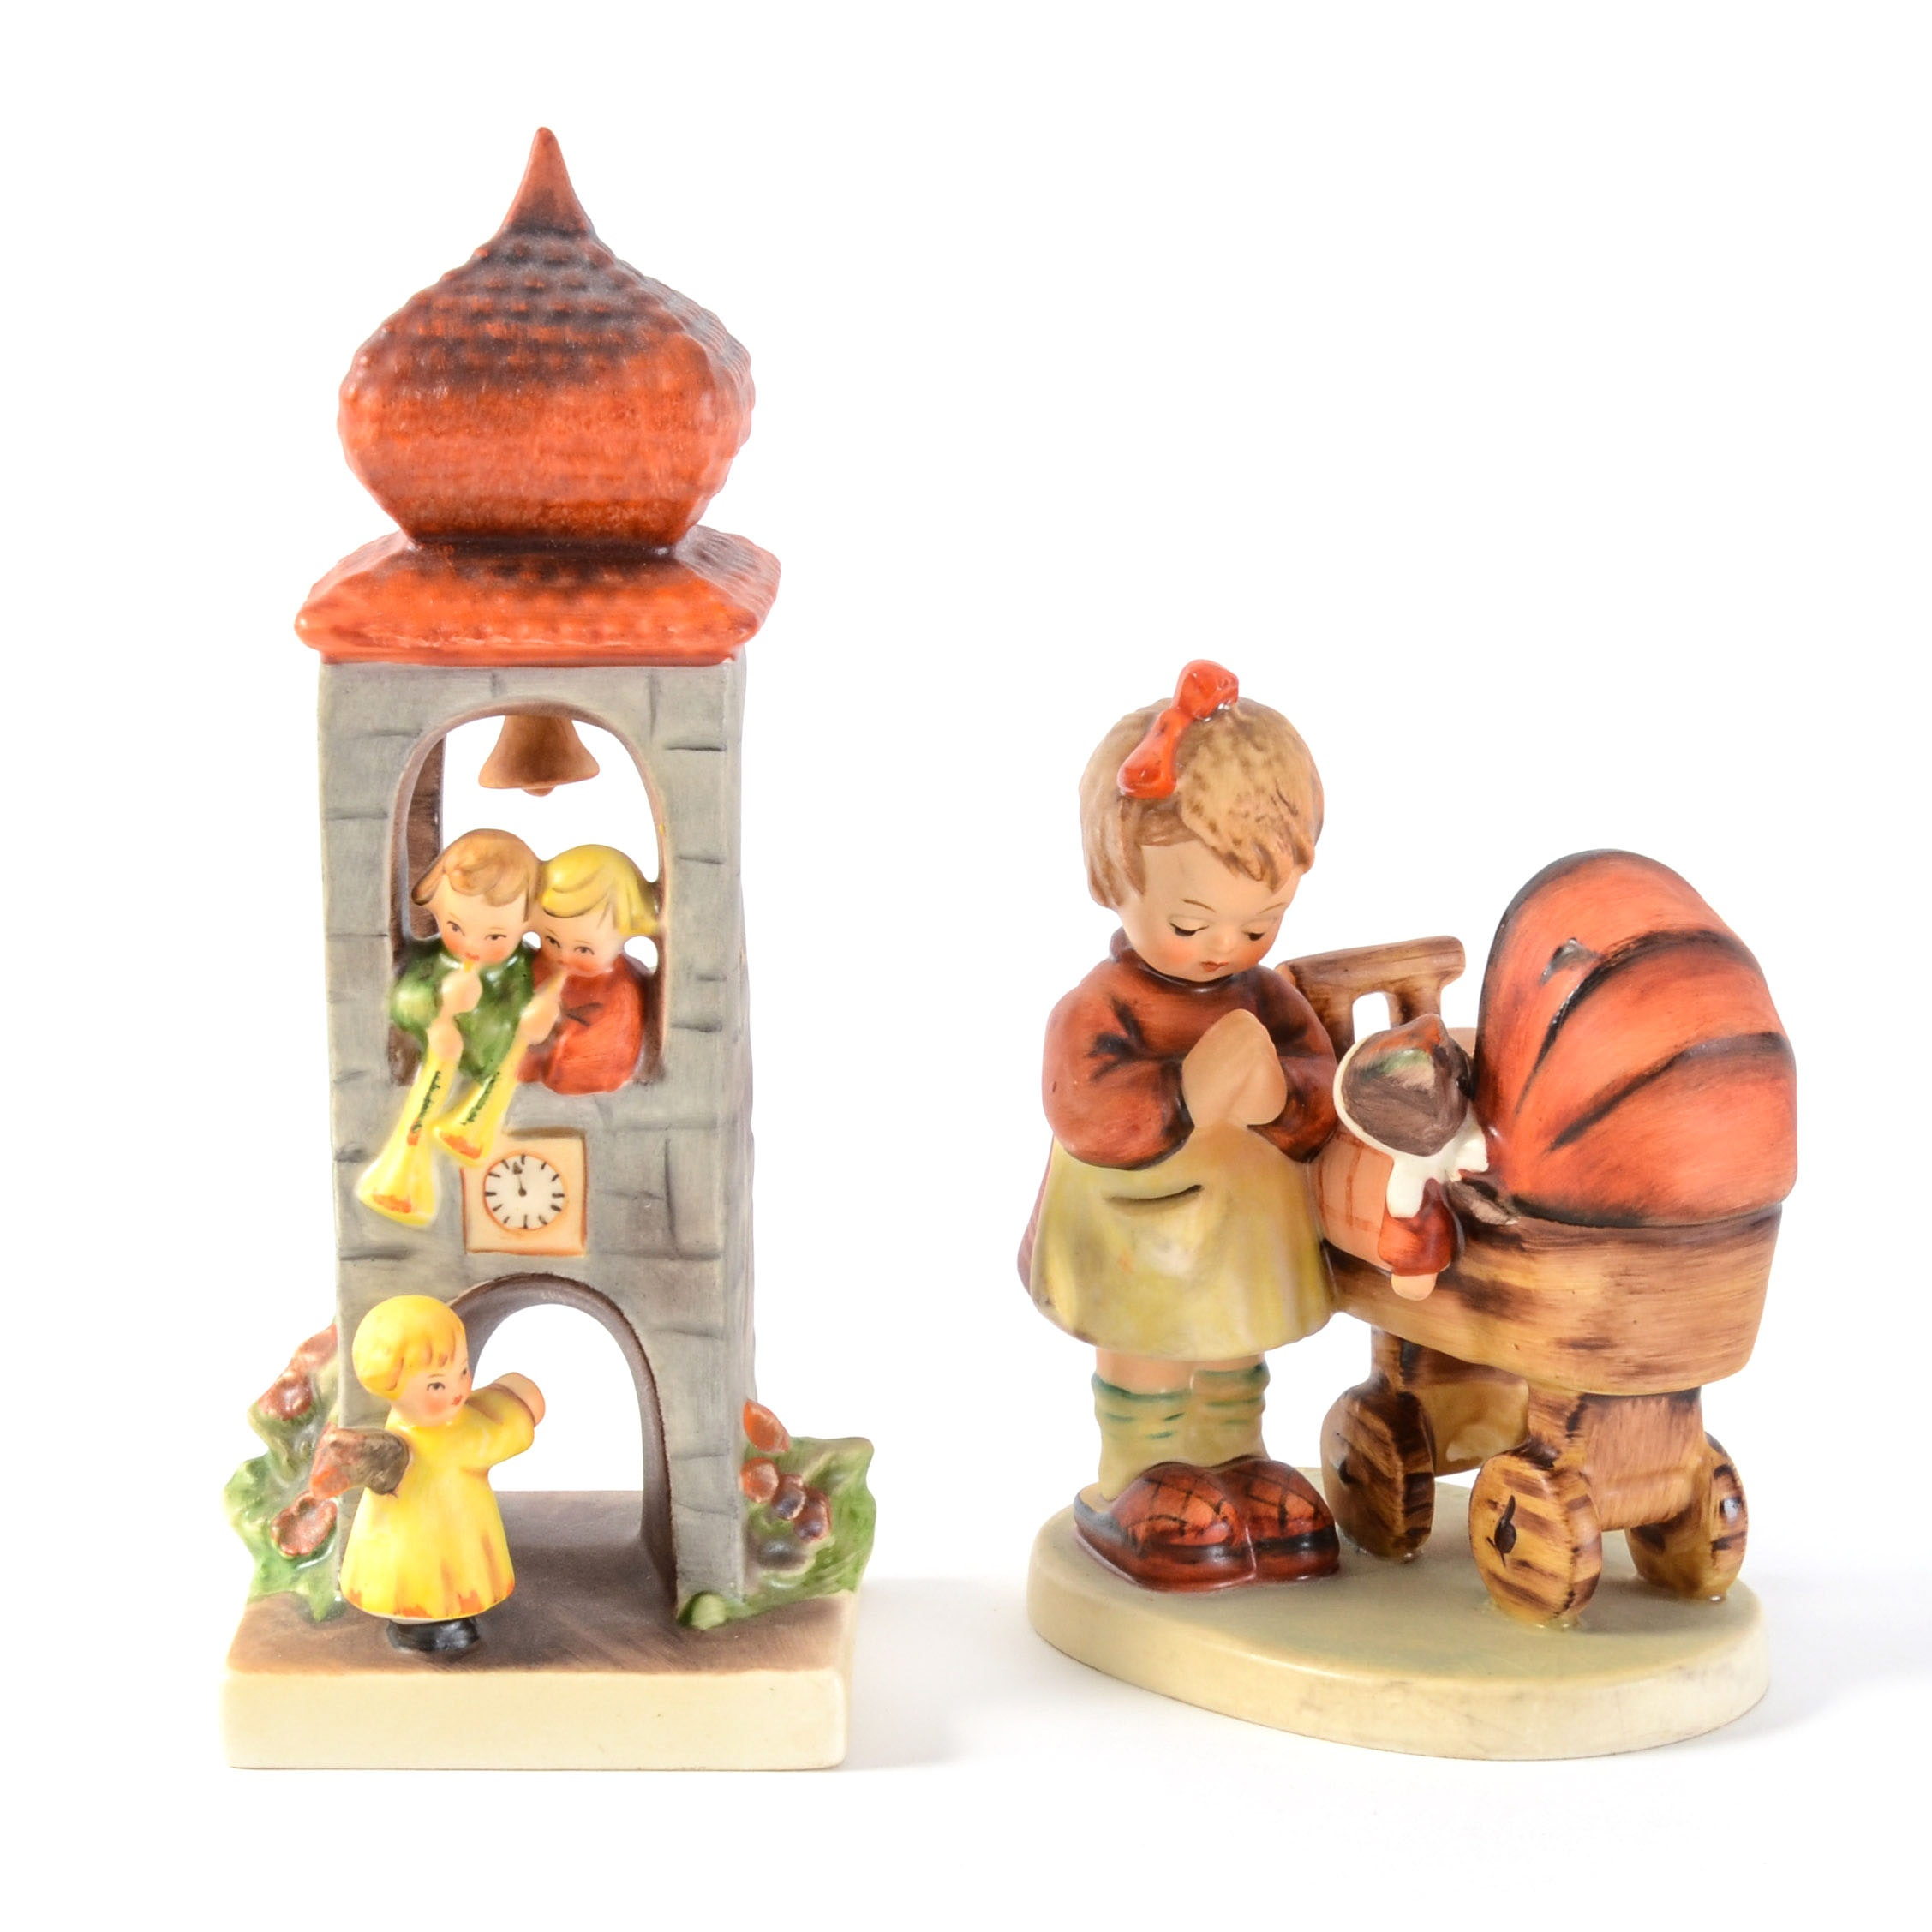 """Gobel Hummel """"Whitsuntide"""" and """"Doll Mother"""" Figurines"""